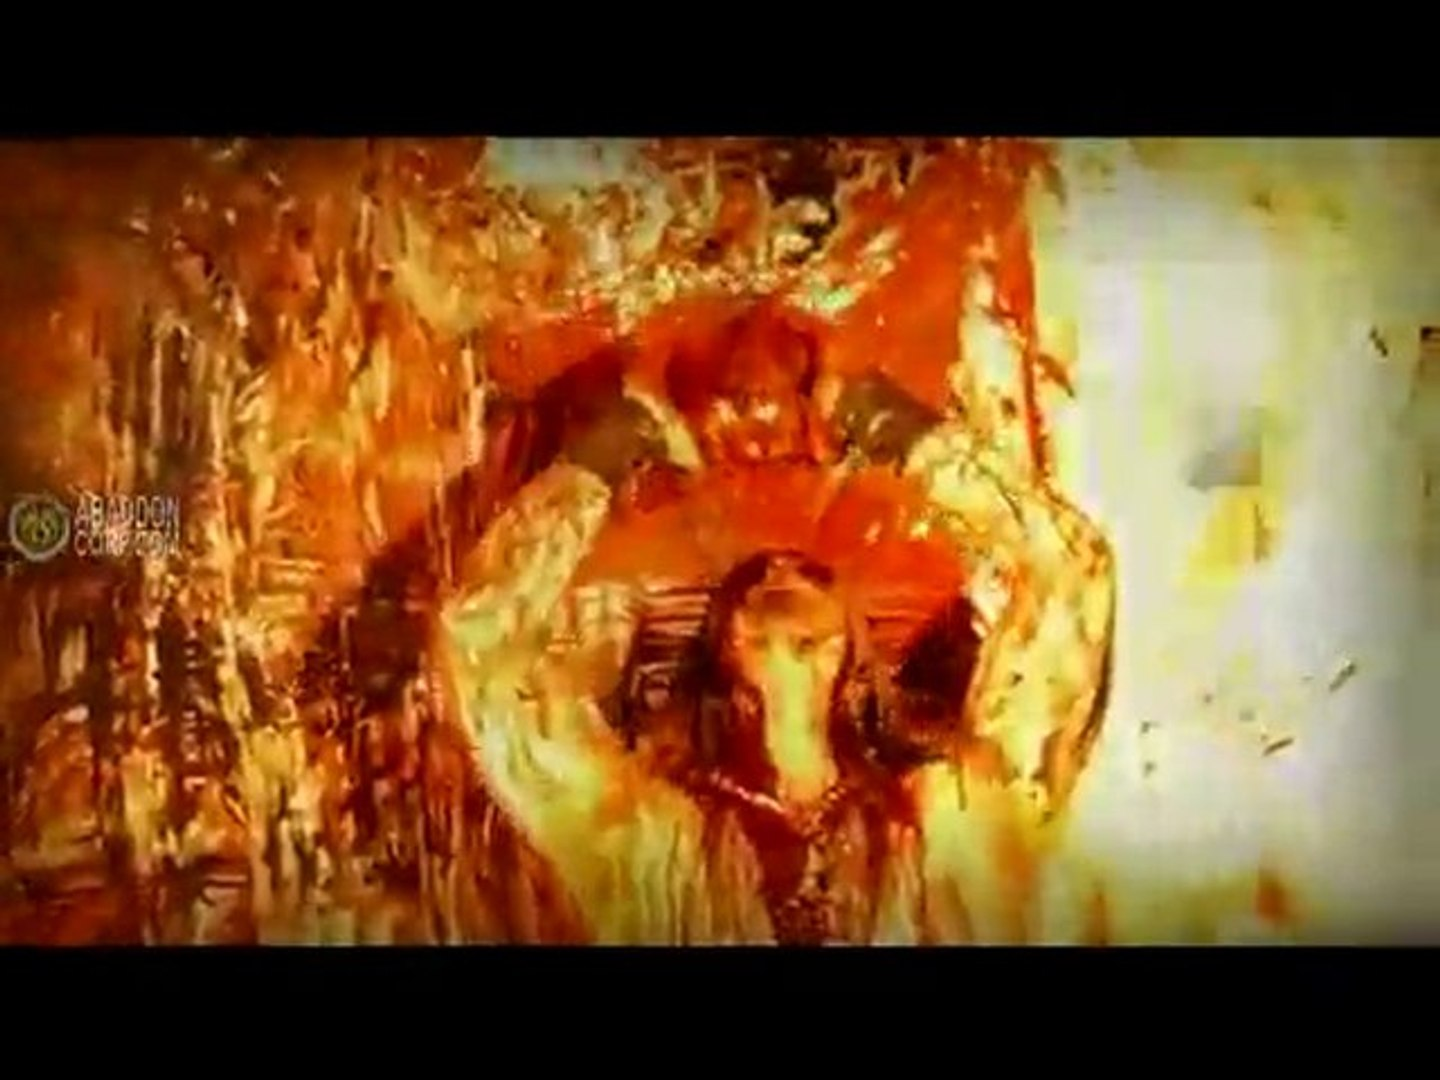 Belphegor - Impaled Upon The Tongue Of Satan (Uncensored)